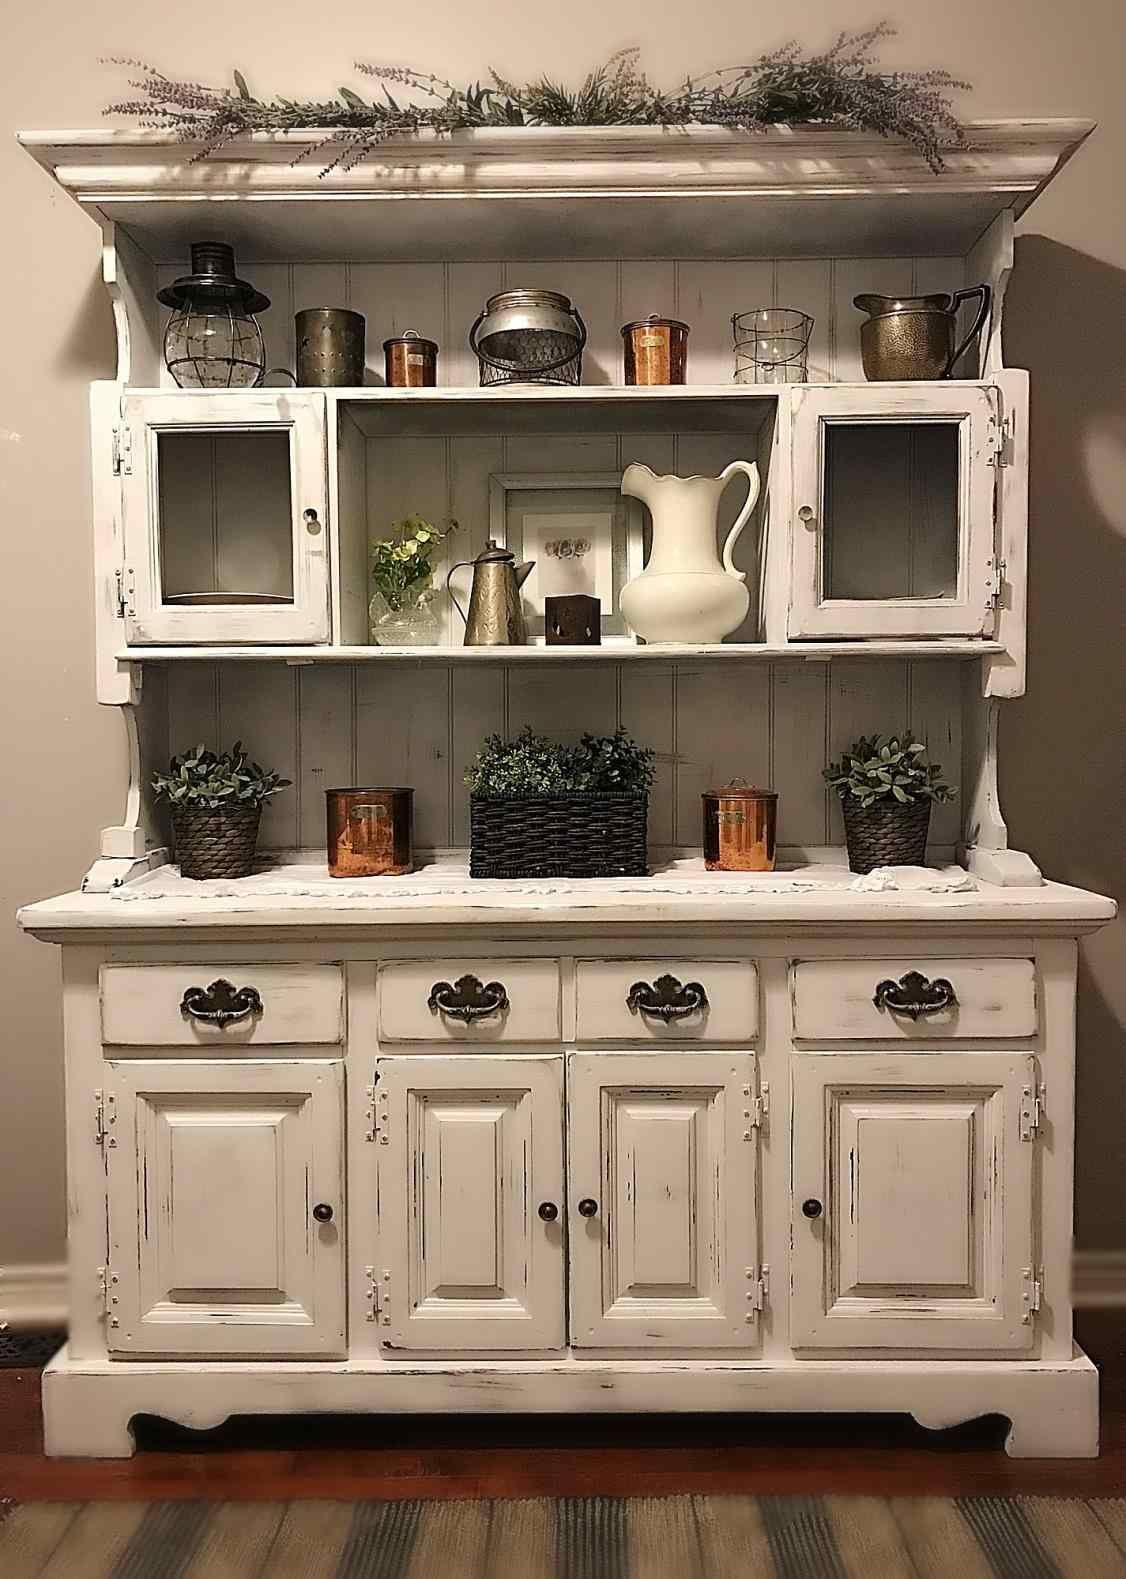 Marvelous Country Kitchen Cabinets For Sale | Farmhouse Hutch For Sale | Siudy.net